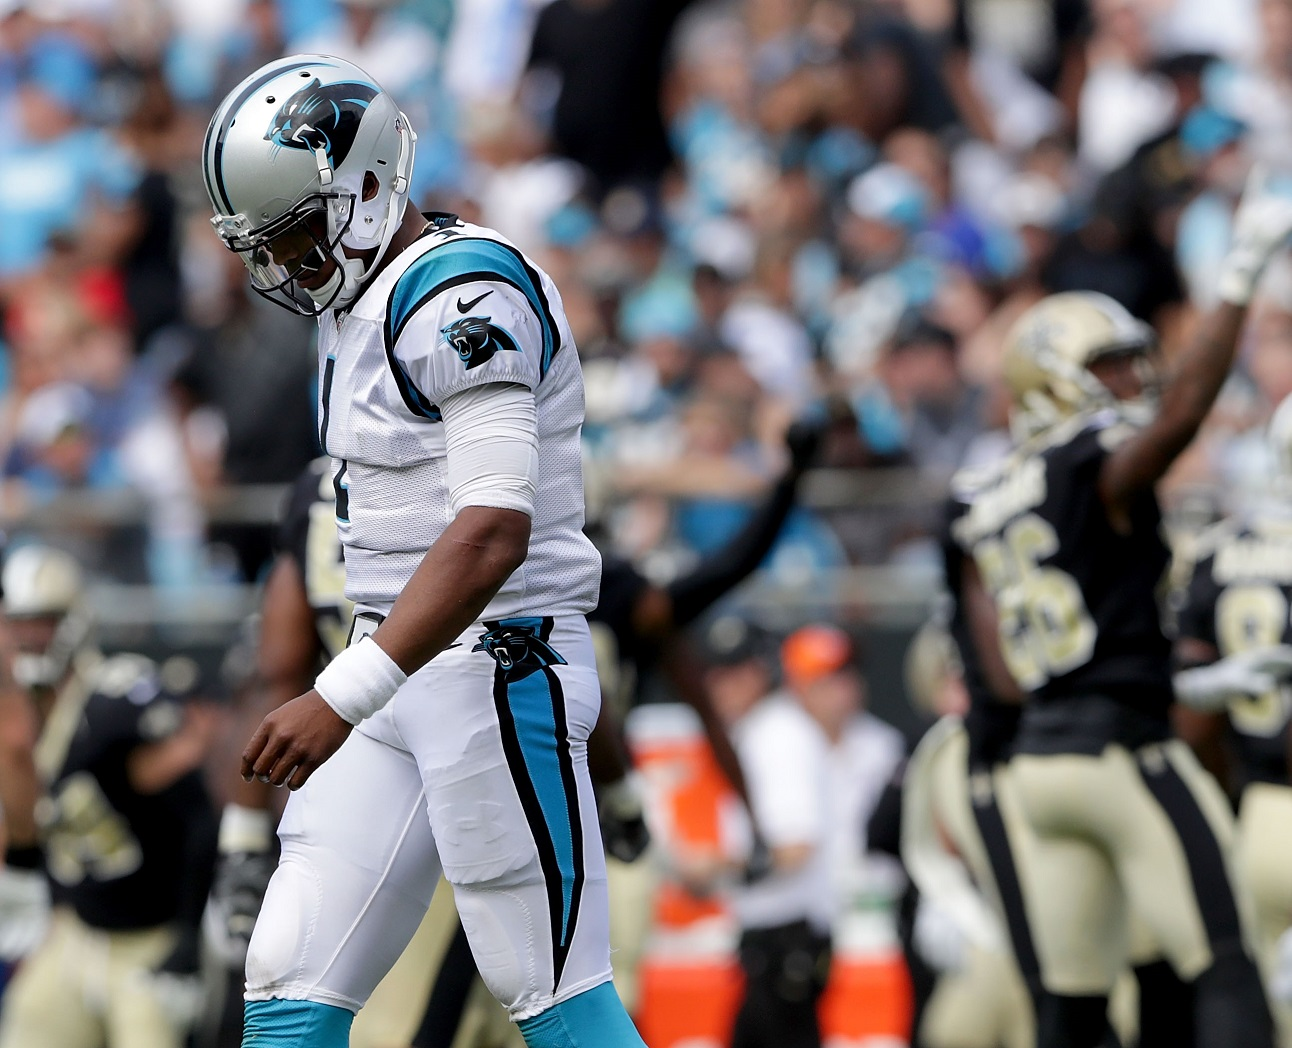 That's a victor: Saints pound Panthers, 34-13